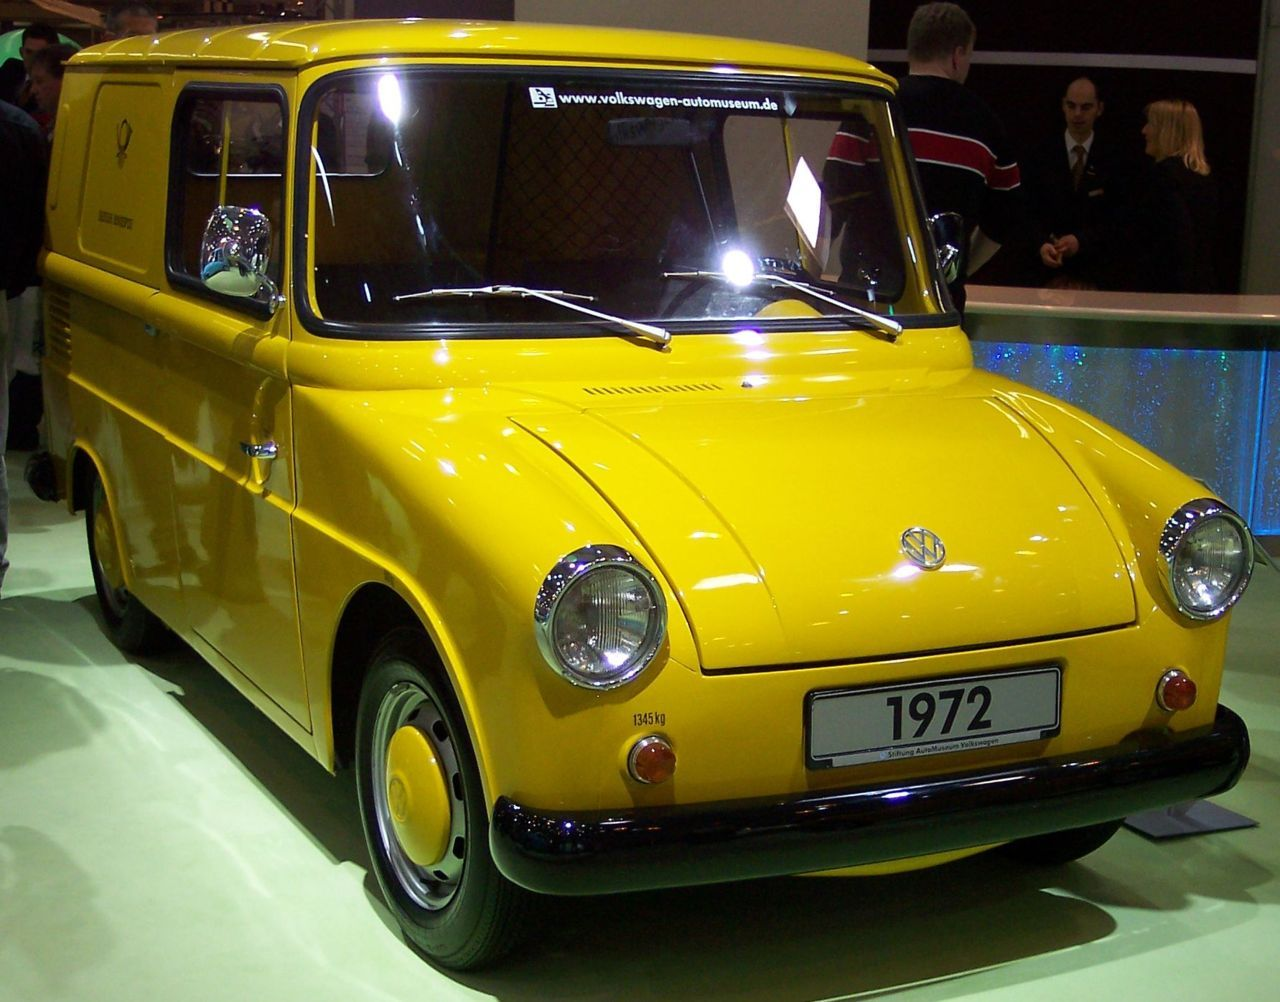 """What's this?"" you might ask. It's a VW 147, which was developed in the mid 60s by Volkswagen and Westfalia (who produced the camper vans) for the German Post as a delivery vehicle, mostly for country postmen. It was based on a Volkswagen Type 1 Beetle chassis, and the shape sort of looked like a Type 3 (notch back) and VW Kombi van combined into one disproportional car; it was either nicknamed ""Fridolin"", or less tastefully, due to its shape, ""Contergan"", which was the German brand name for the drug ""Thalidomide"", which caused so many malformed baby births.  It hat sliding doors, one fixed seat and (sometimes) one folding front seat, storage space in the back. The axles were from the Volkswagen Karmann Ghia to give it a little wider wheel base. Only 6,126 were built between 1964 and 1973; now they enjoy real collectors value… I used to own one — a long time ago; it was the only vehicle I ever drove, which found hills [= it lost speed] where one would not see any incline in the road surface… :D"